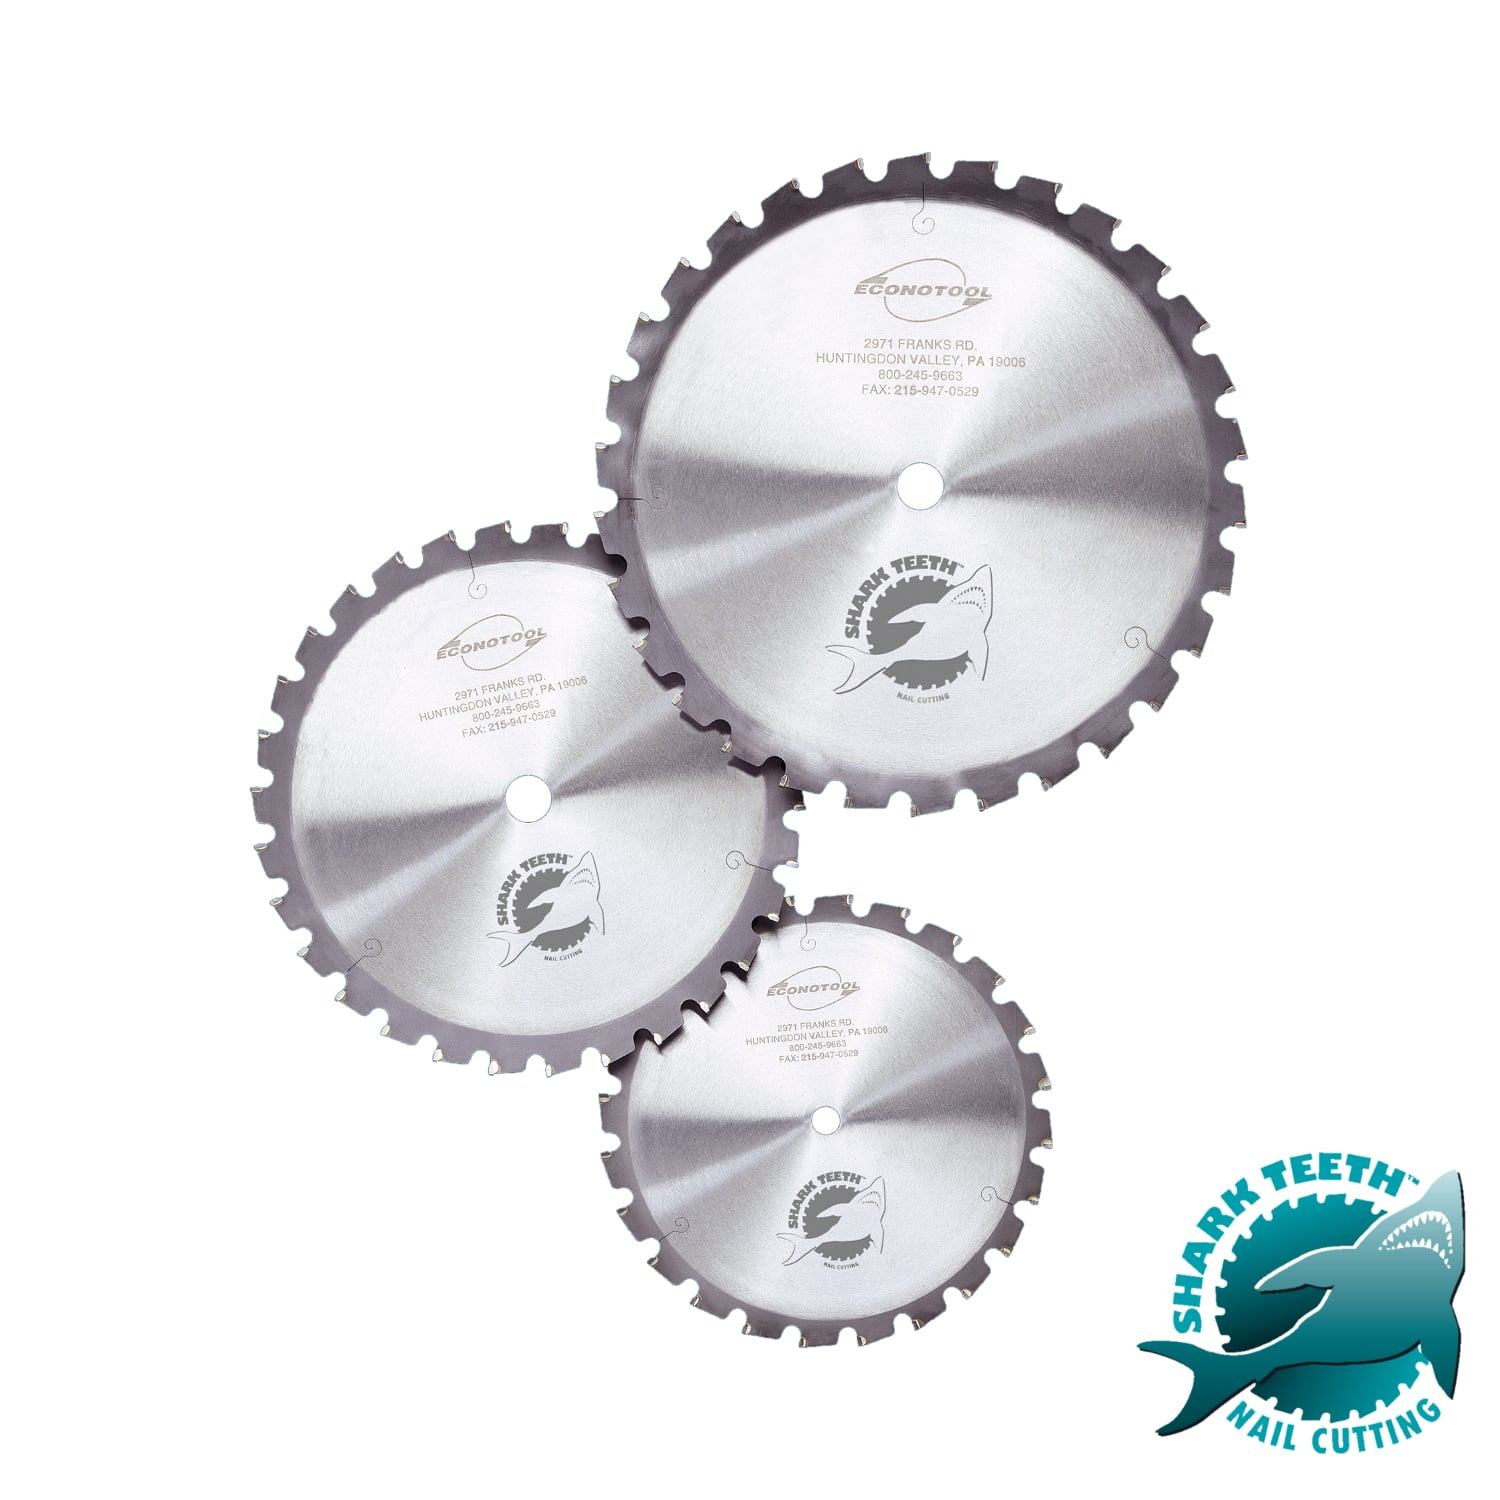 Circular Saw Blades With Sharkteeth Carbide Technology